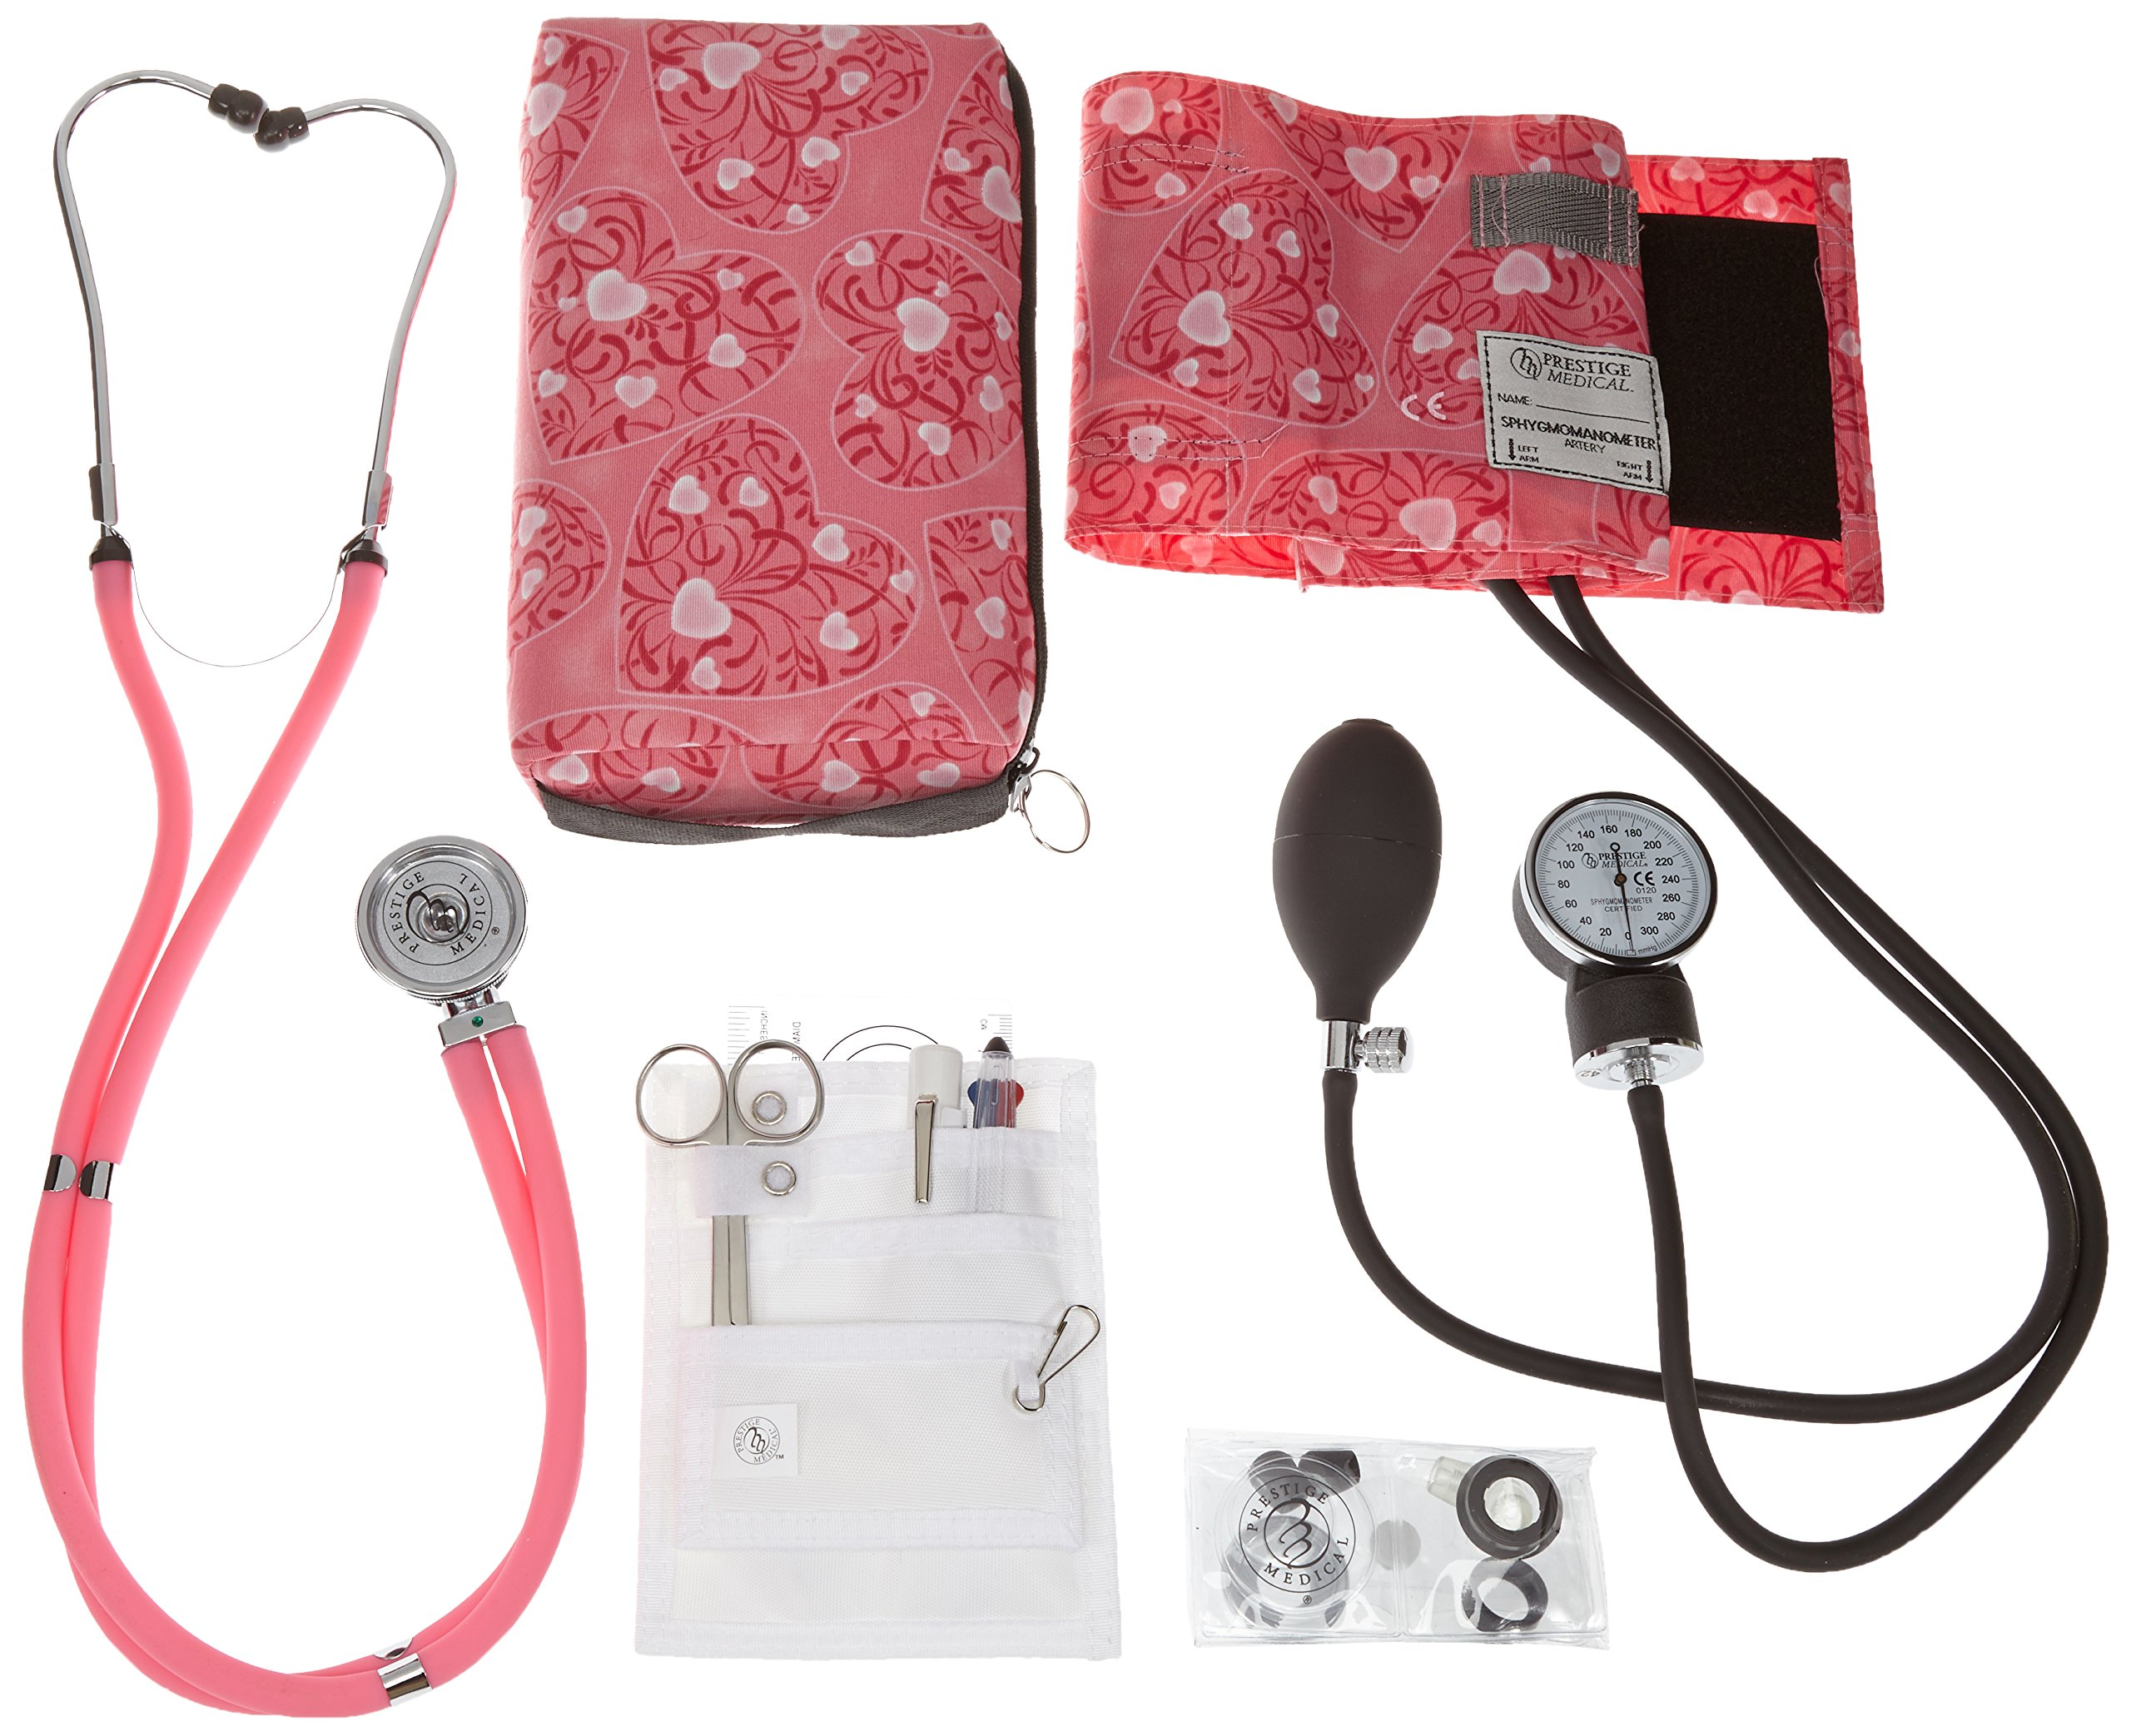 Prestige Medical Supplies 'Aneroid Sphygmomanometer / Sprague-Rappaport Nurse Kit' Hot Pink Hearts